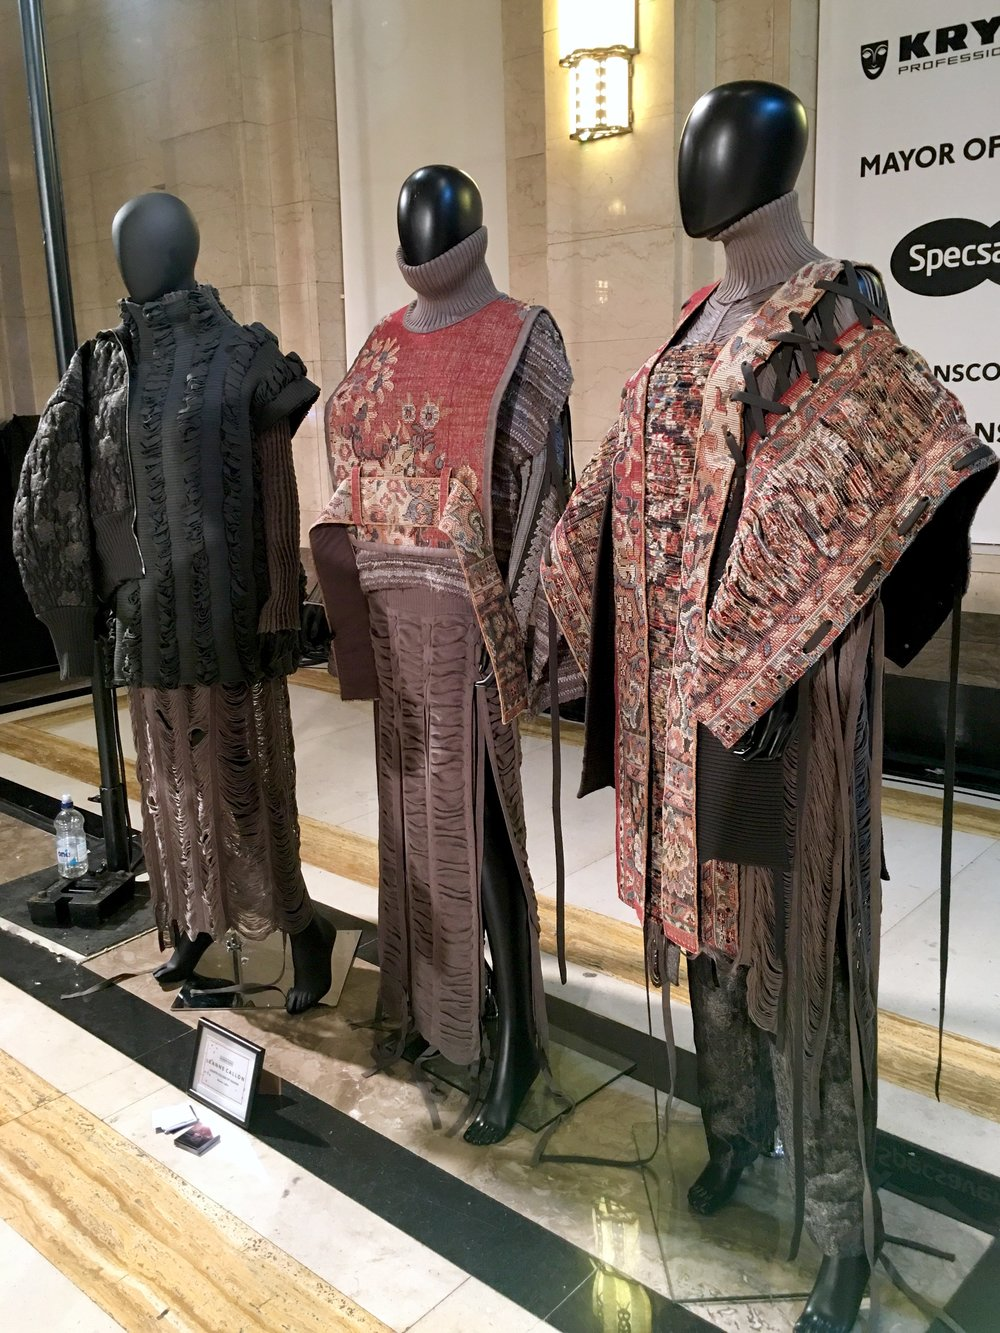 leanne callon - London College of Fashion@leanne_callonAnother sober palette, this time in tones of rust and mink, were woven into this collection of polo neck knit dresses and laced up tapestry tabards that were layered over top to create an almost ecclesiastical robe-effect.